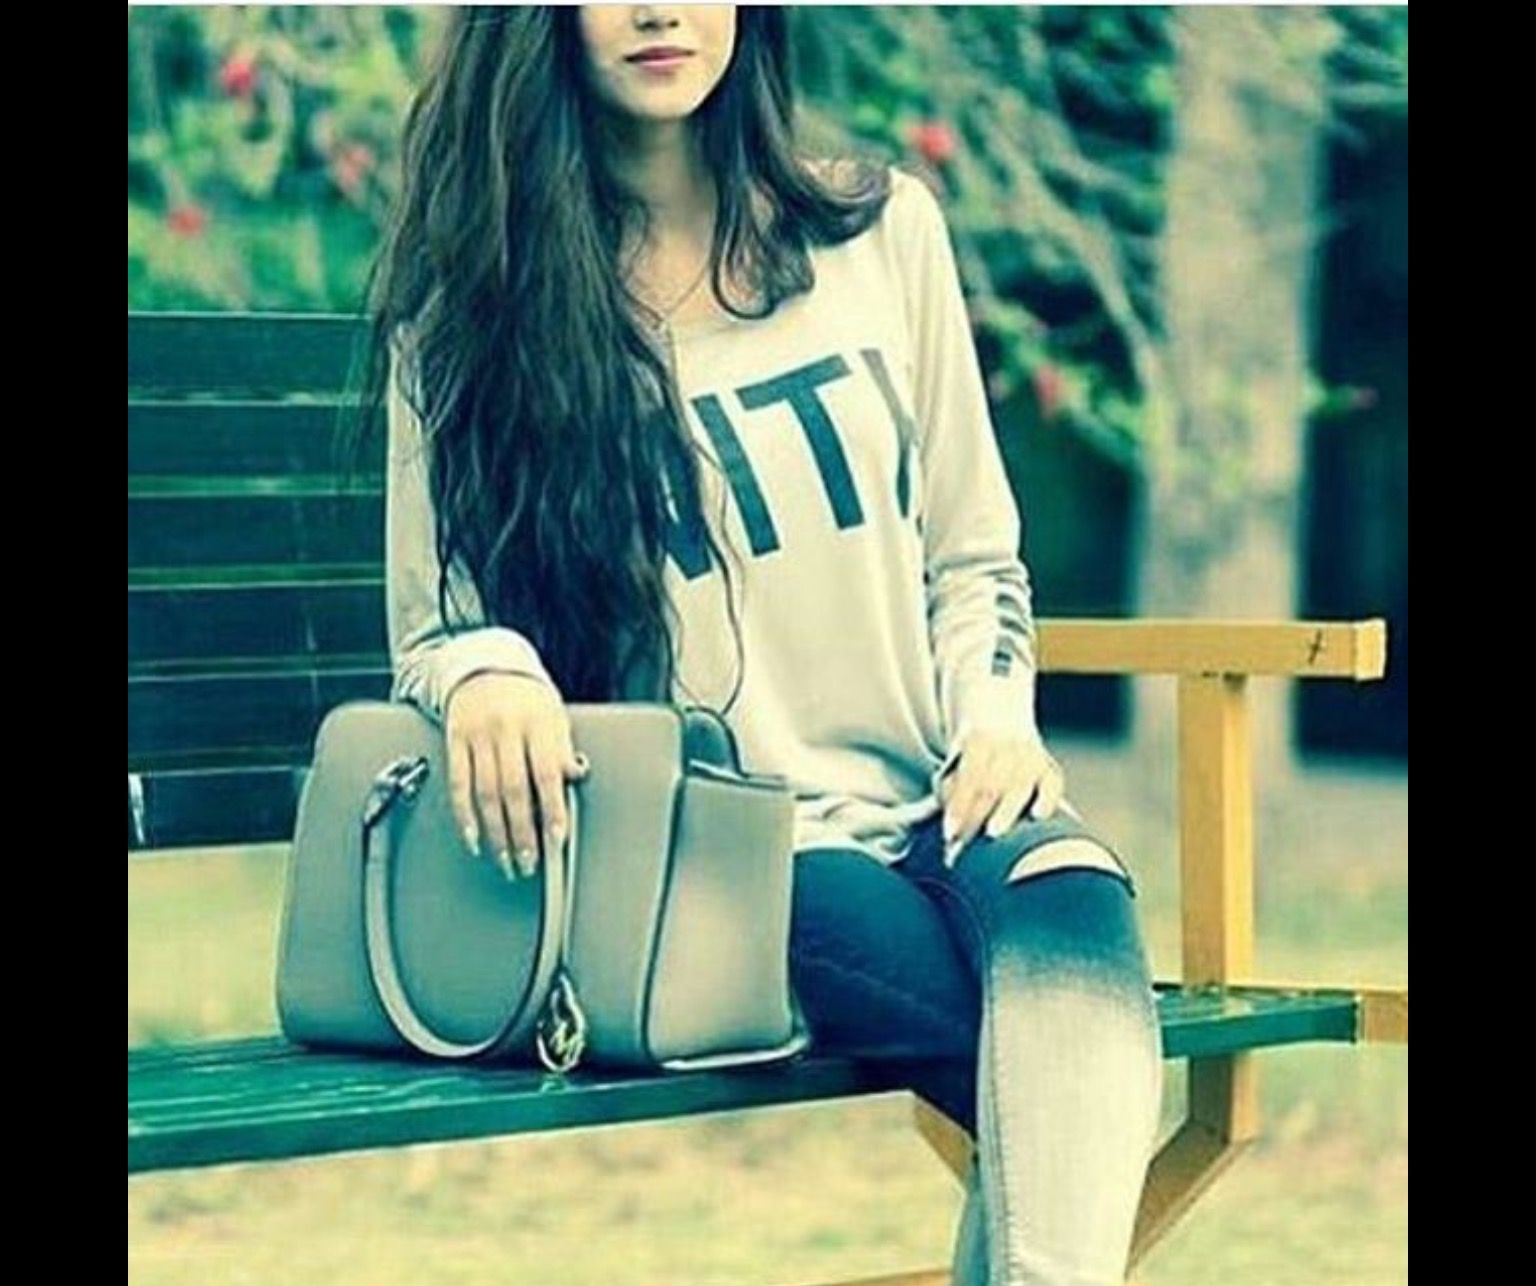 Cool and stylish girls dpz fotos